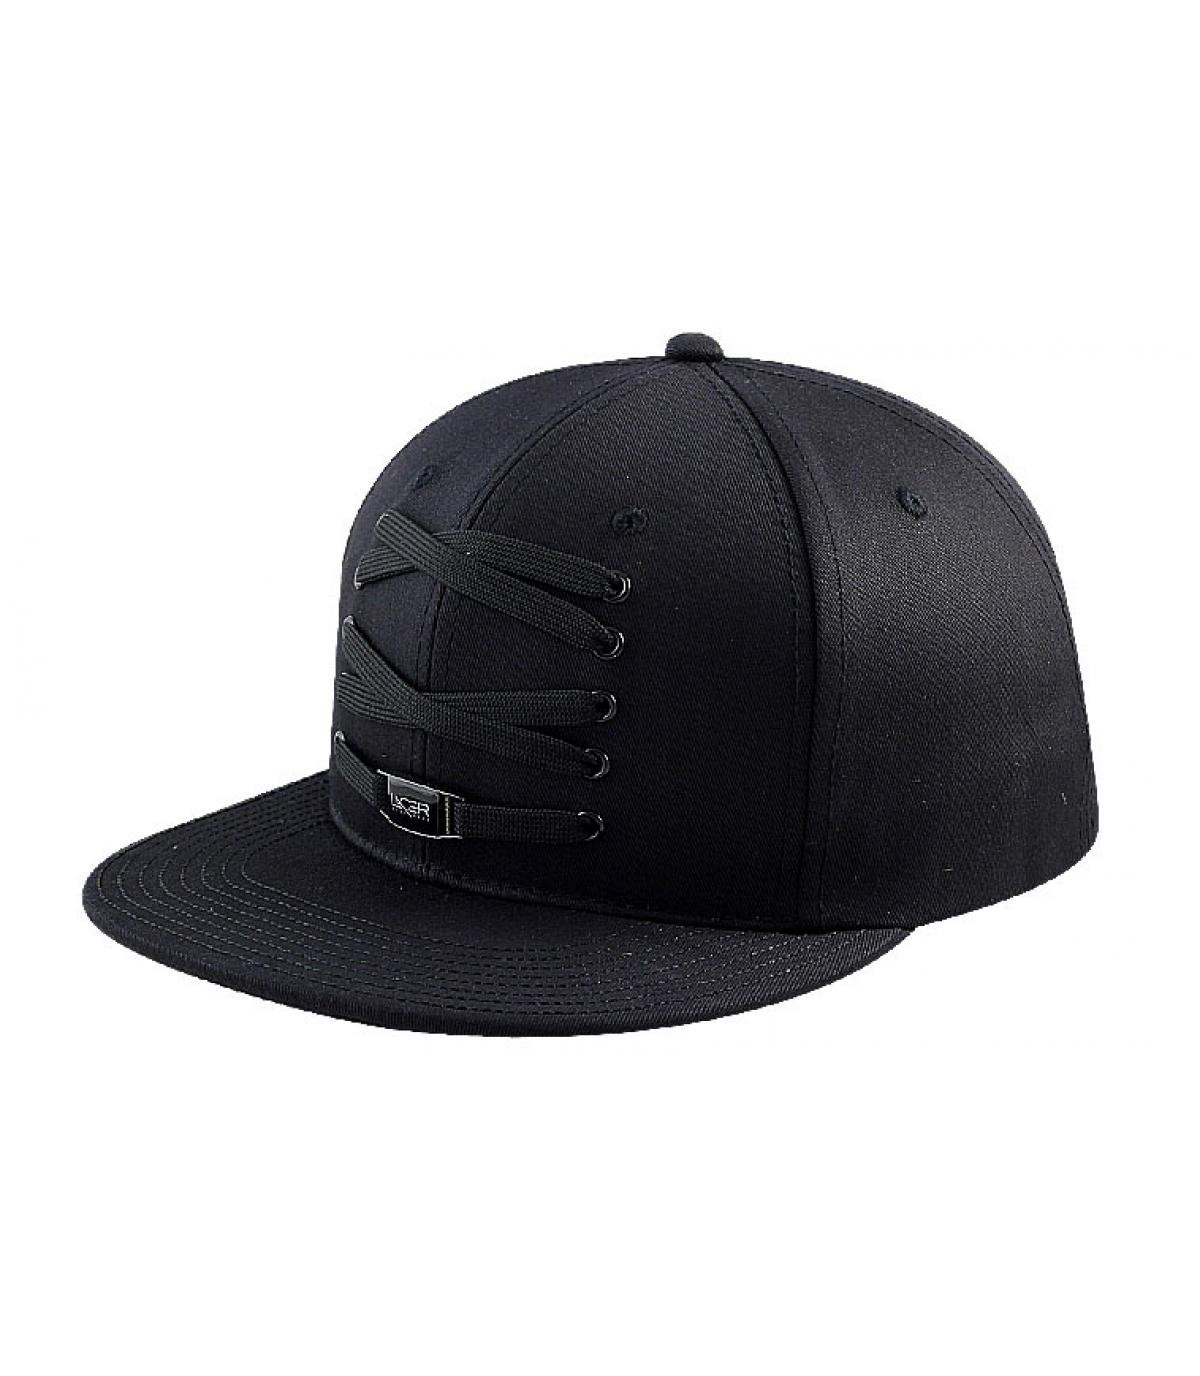 Total black Lacer cap - Snapback Lacer black sole by Lacer. 09784b0be10f